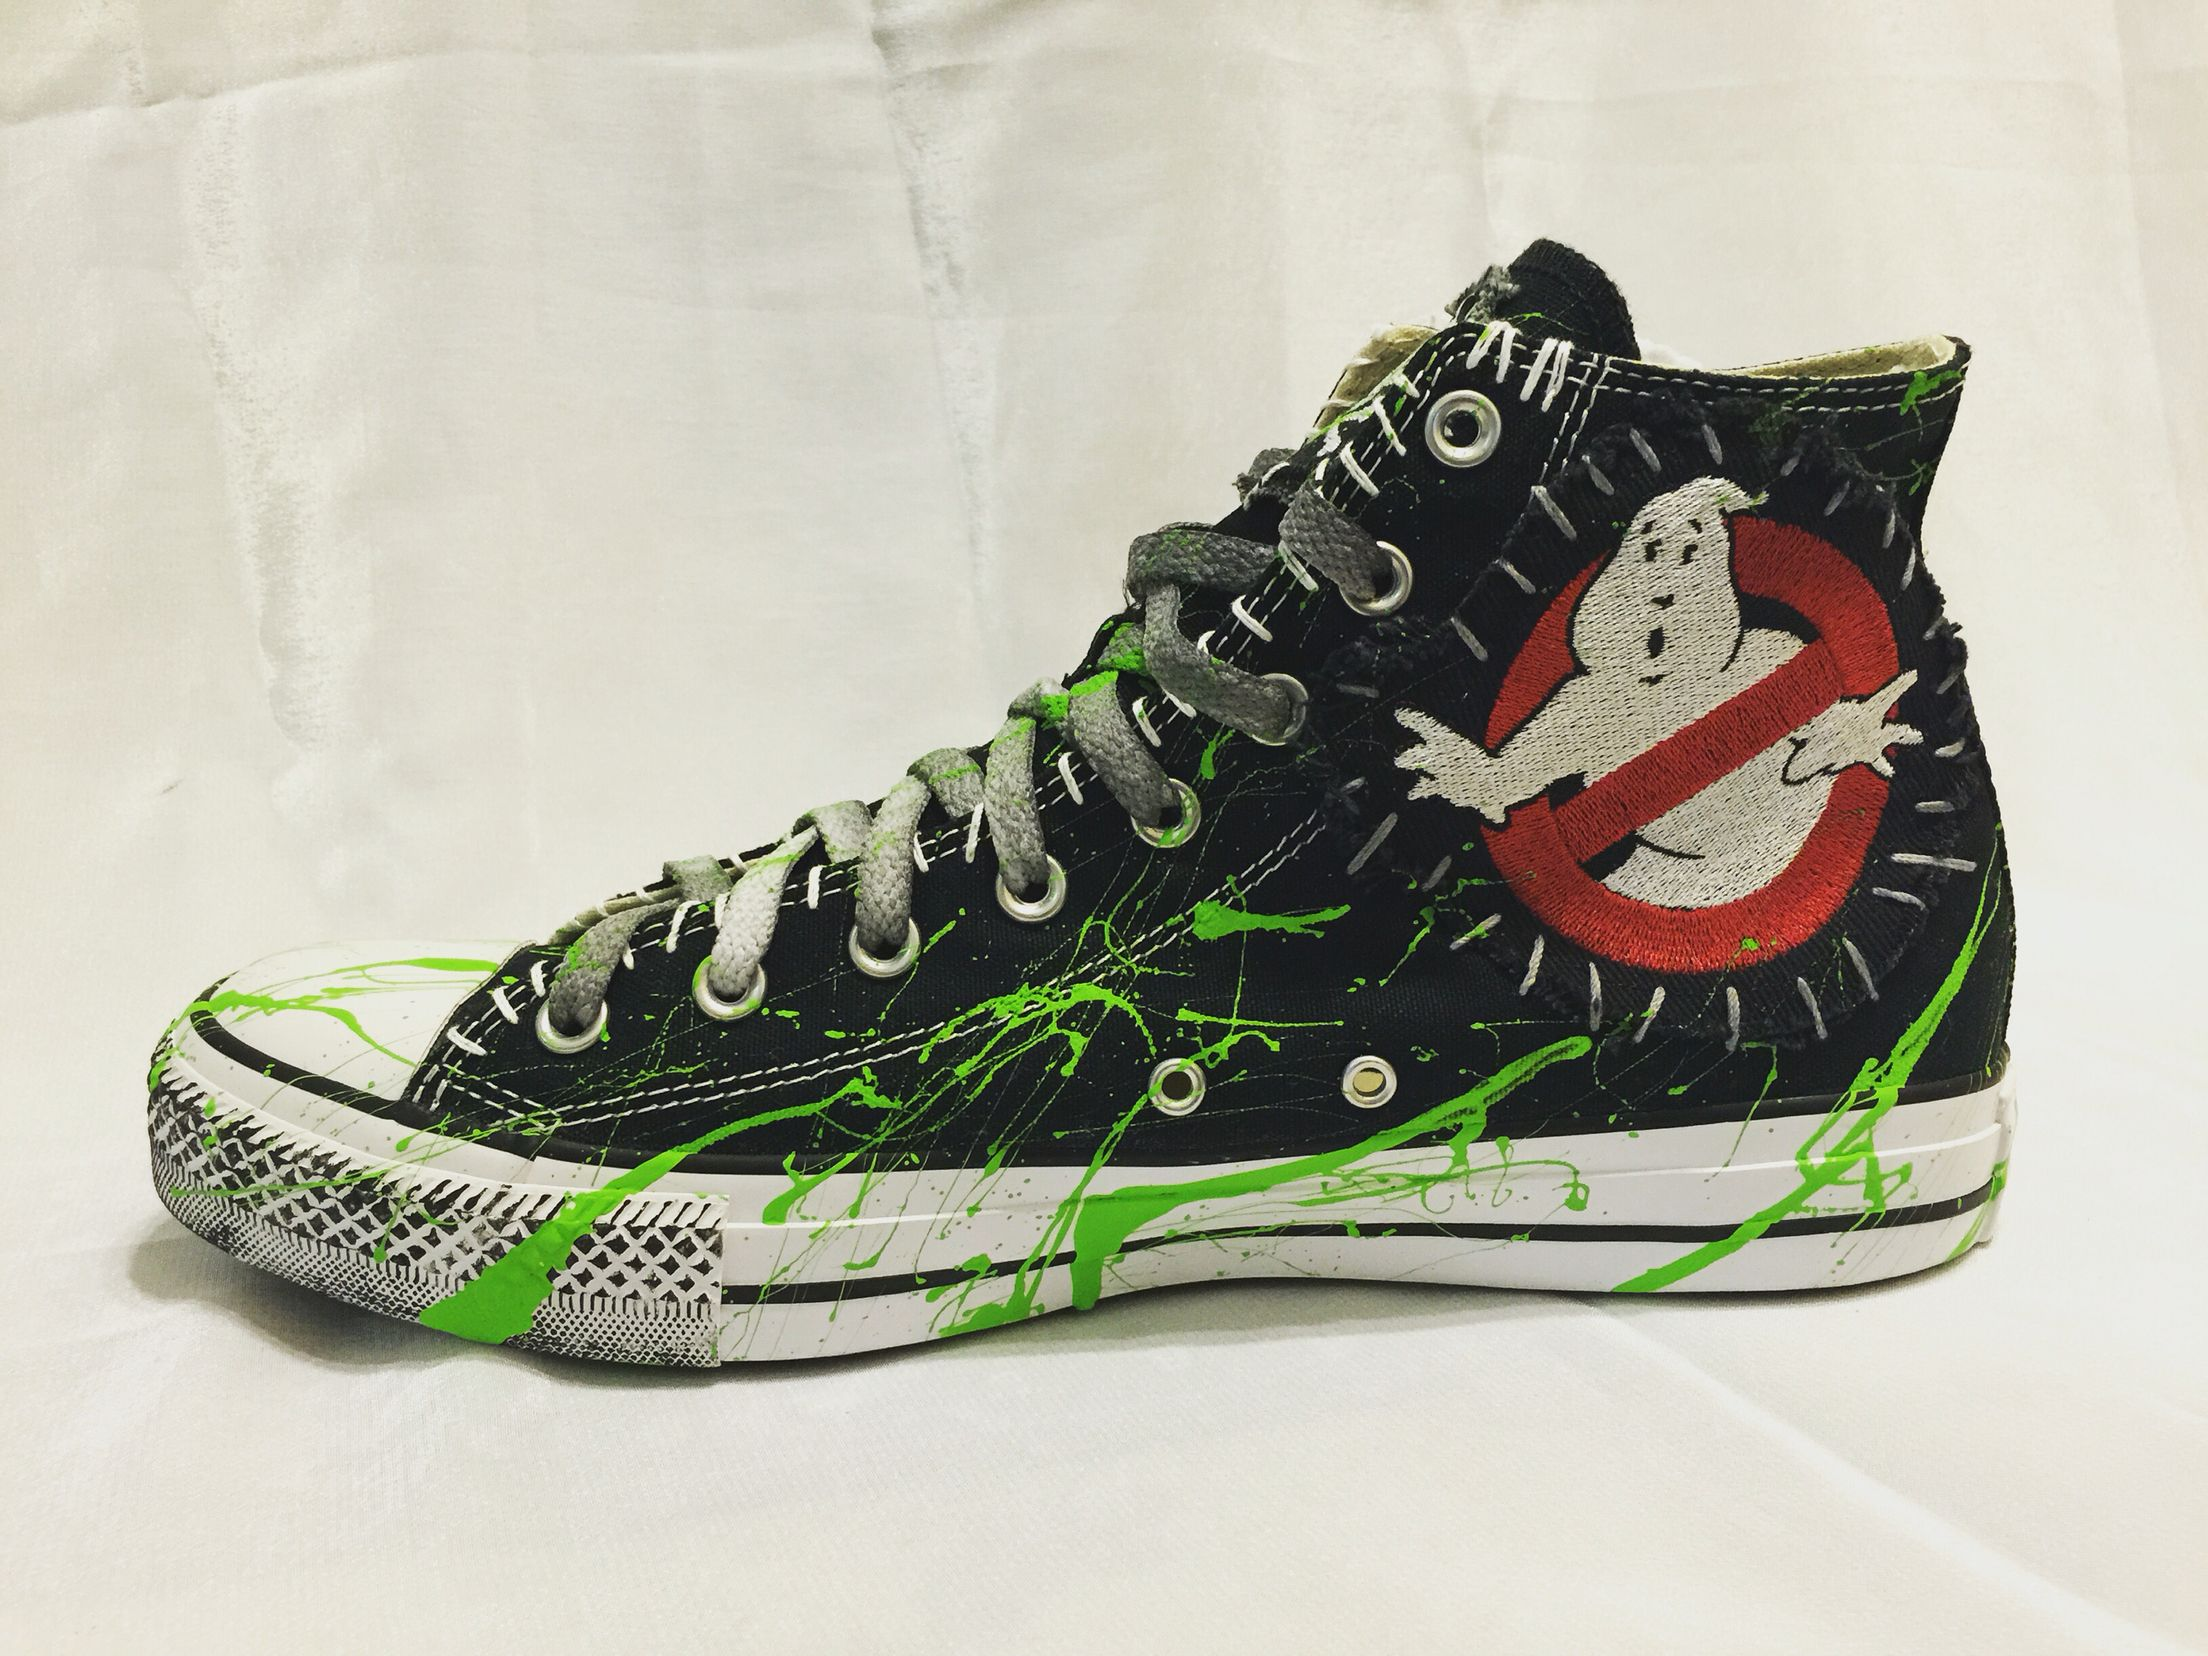 3bb01d44eb31be GHOSTBUSTER  All Star  Converse shoes from Chad Cherry Clothing. Horror  icon shoes! Custom shoes!